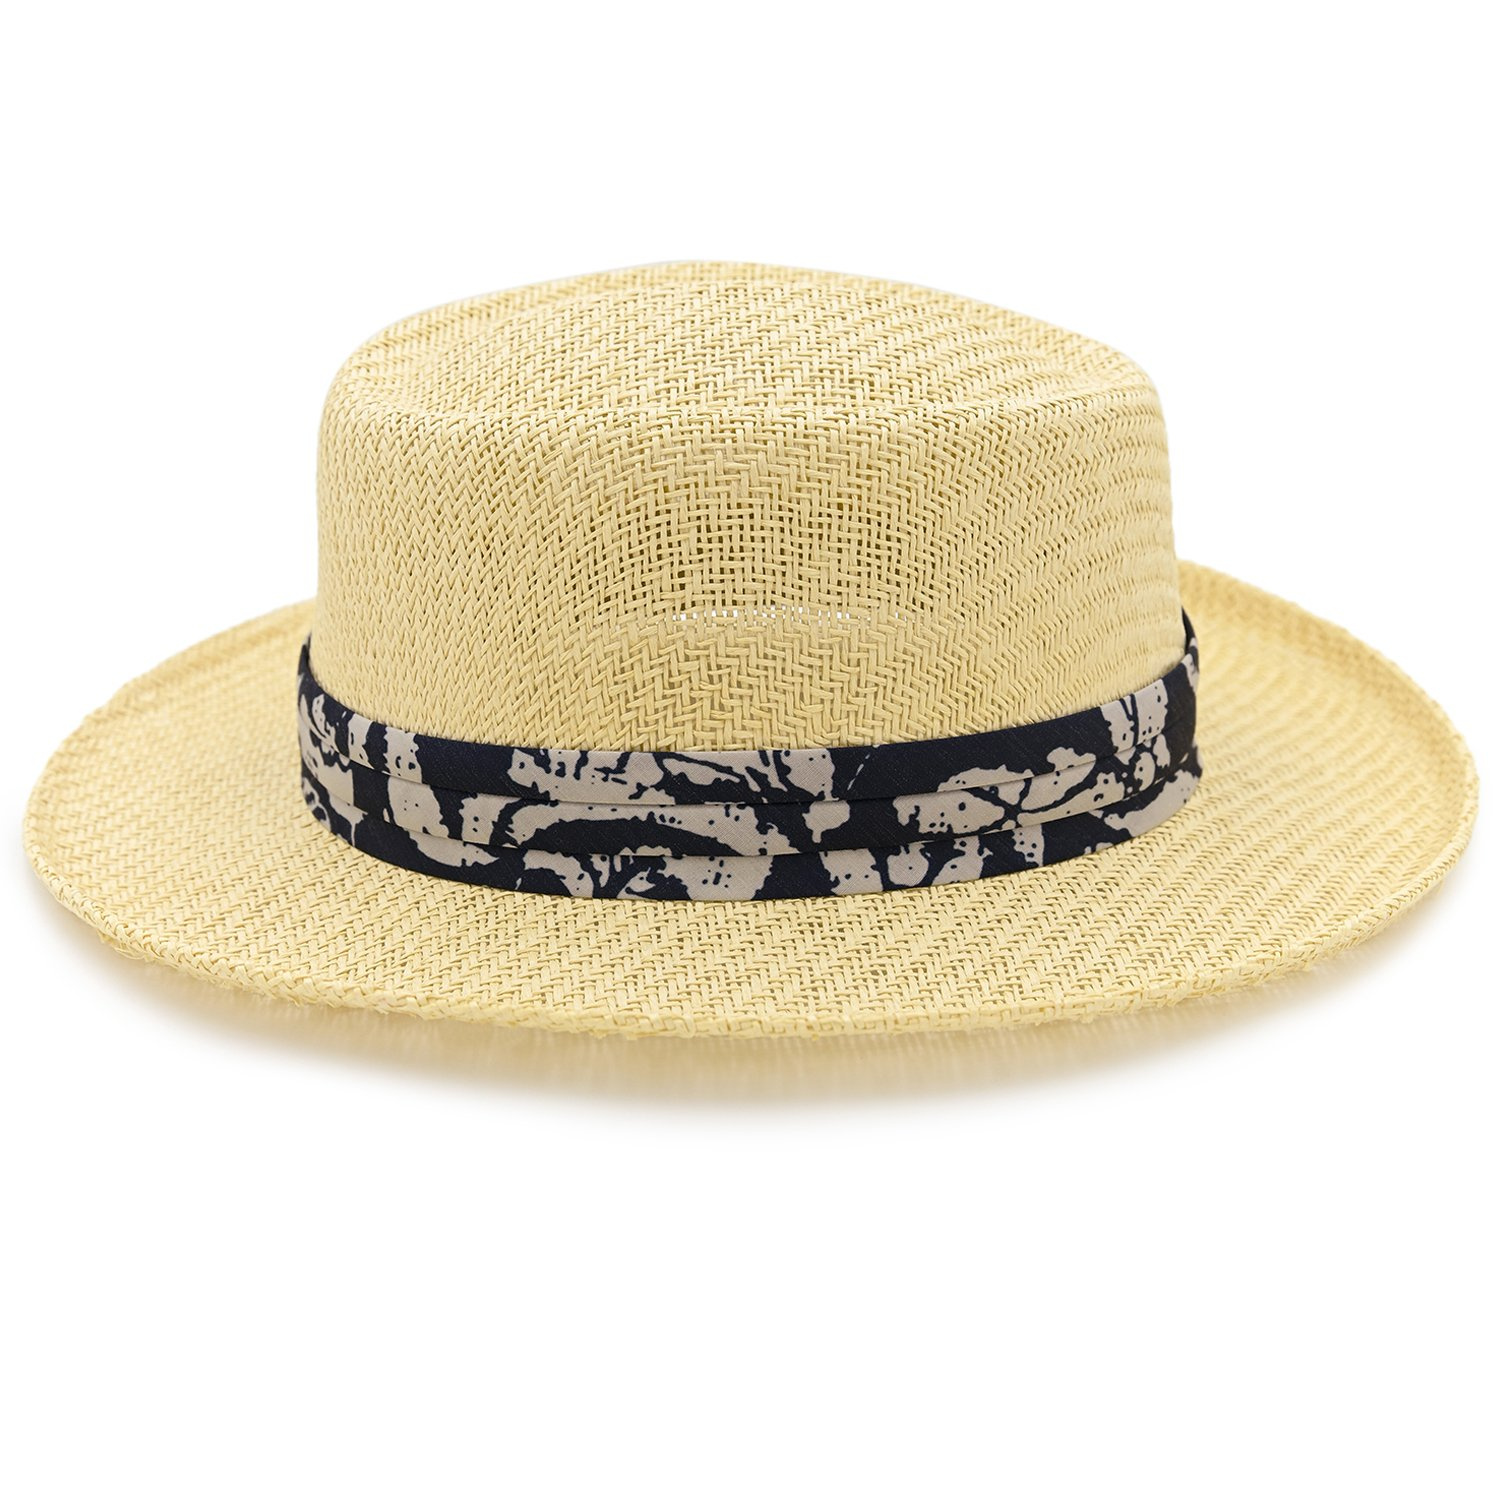 3-Pleat Ribbon Hat Band Inner Elastic Sweatband 3 Big Brim Lightweight Panama Jack Gambler Straw Hat